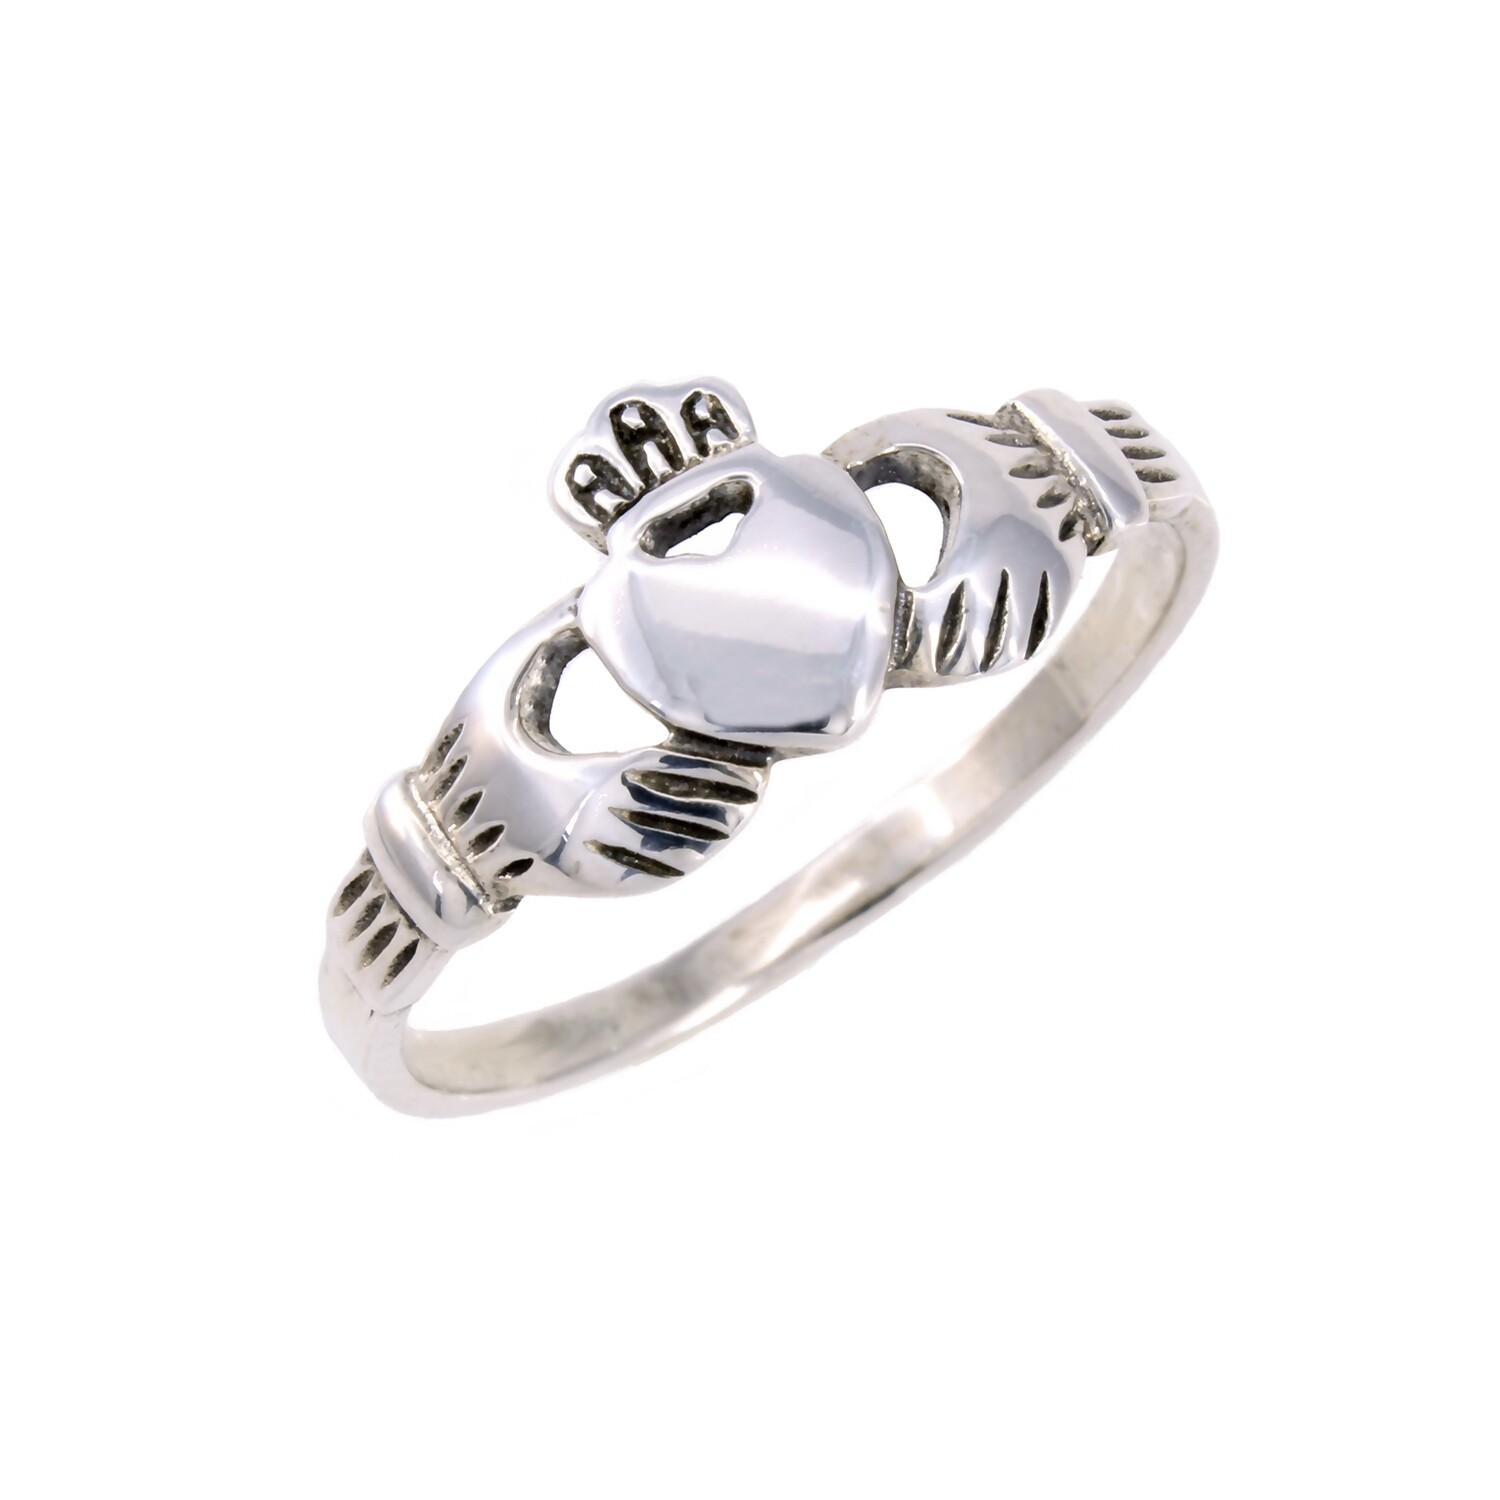 RP0112 Sterling Silver Claddaugh Ring